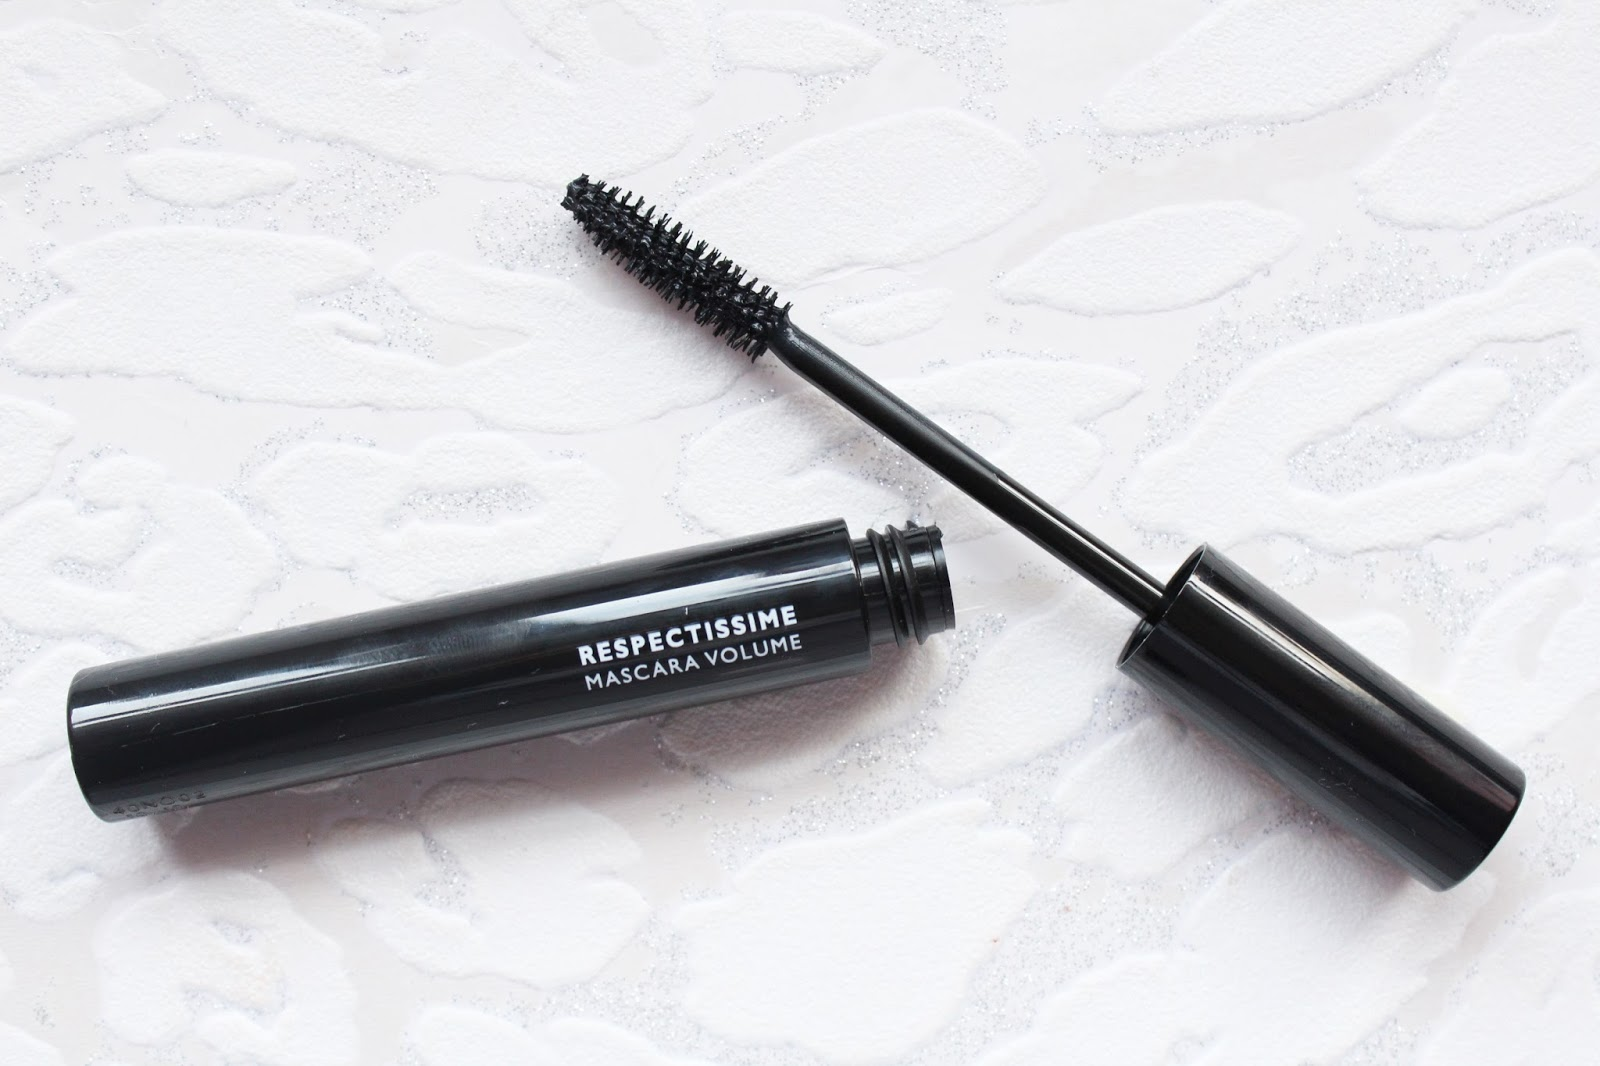 Respectissime Volume Mascara